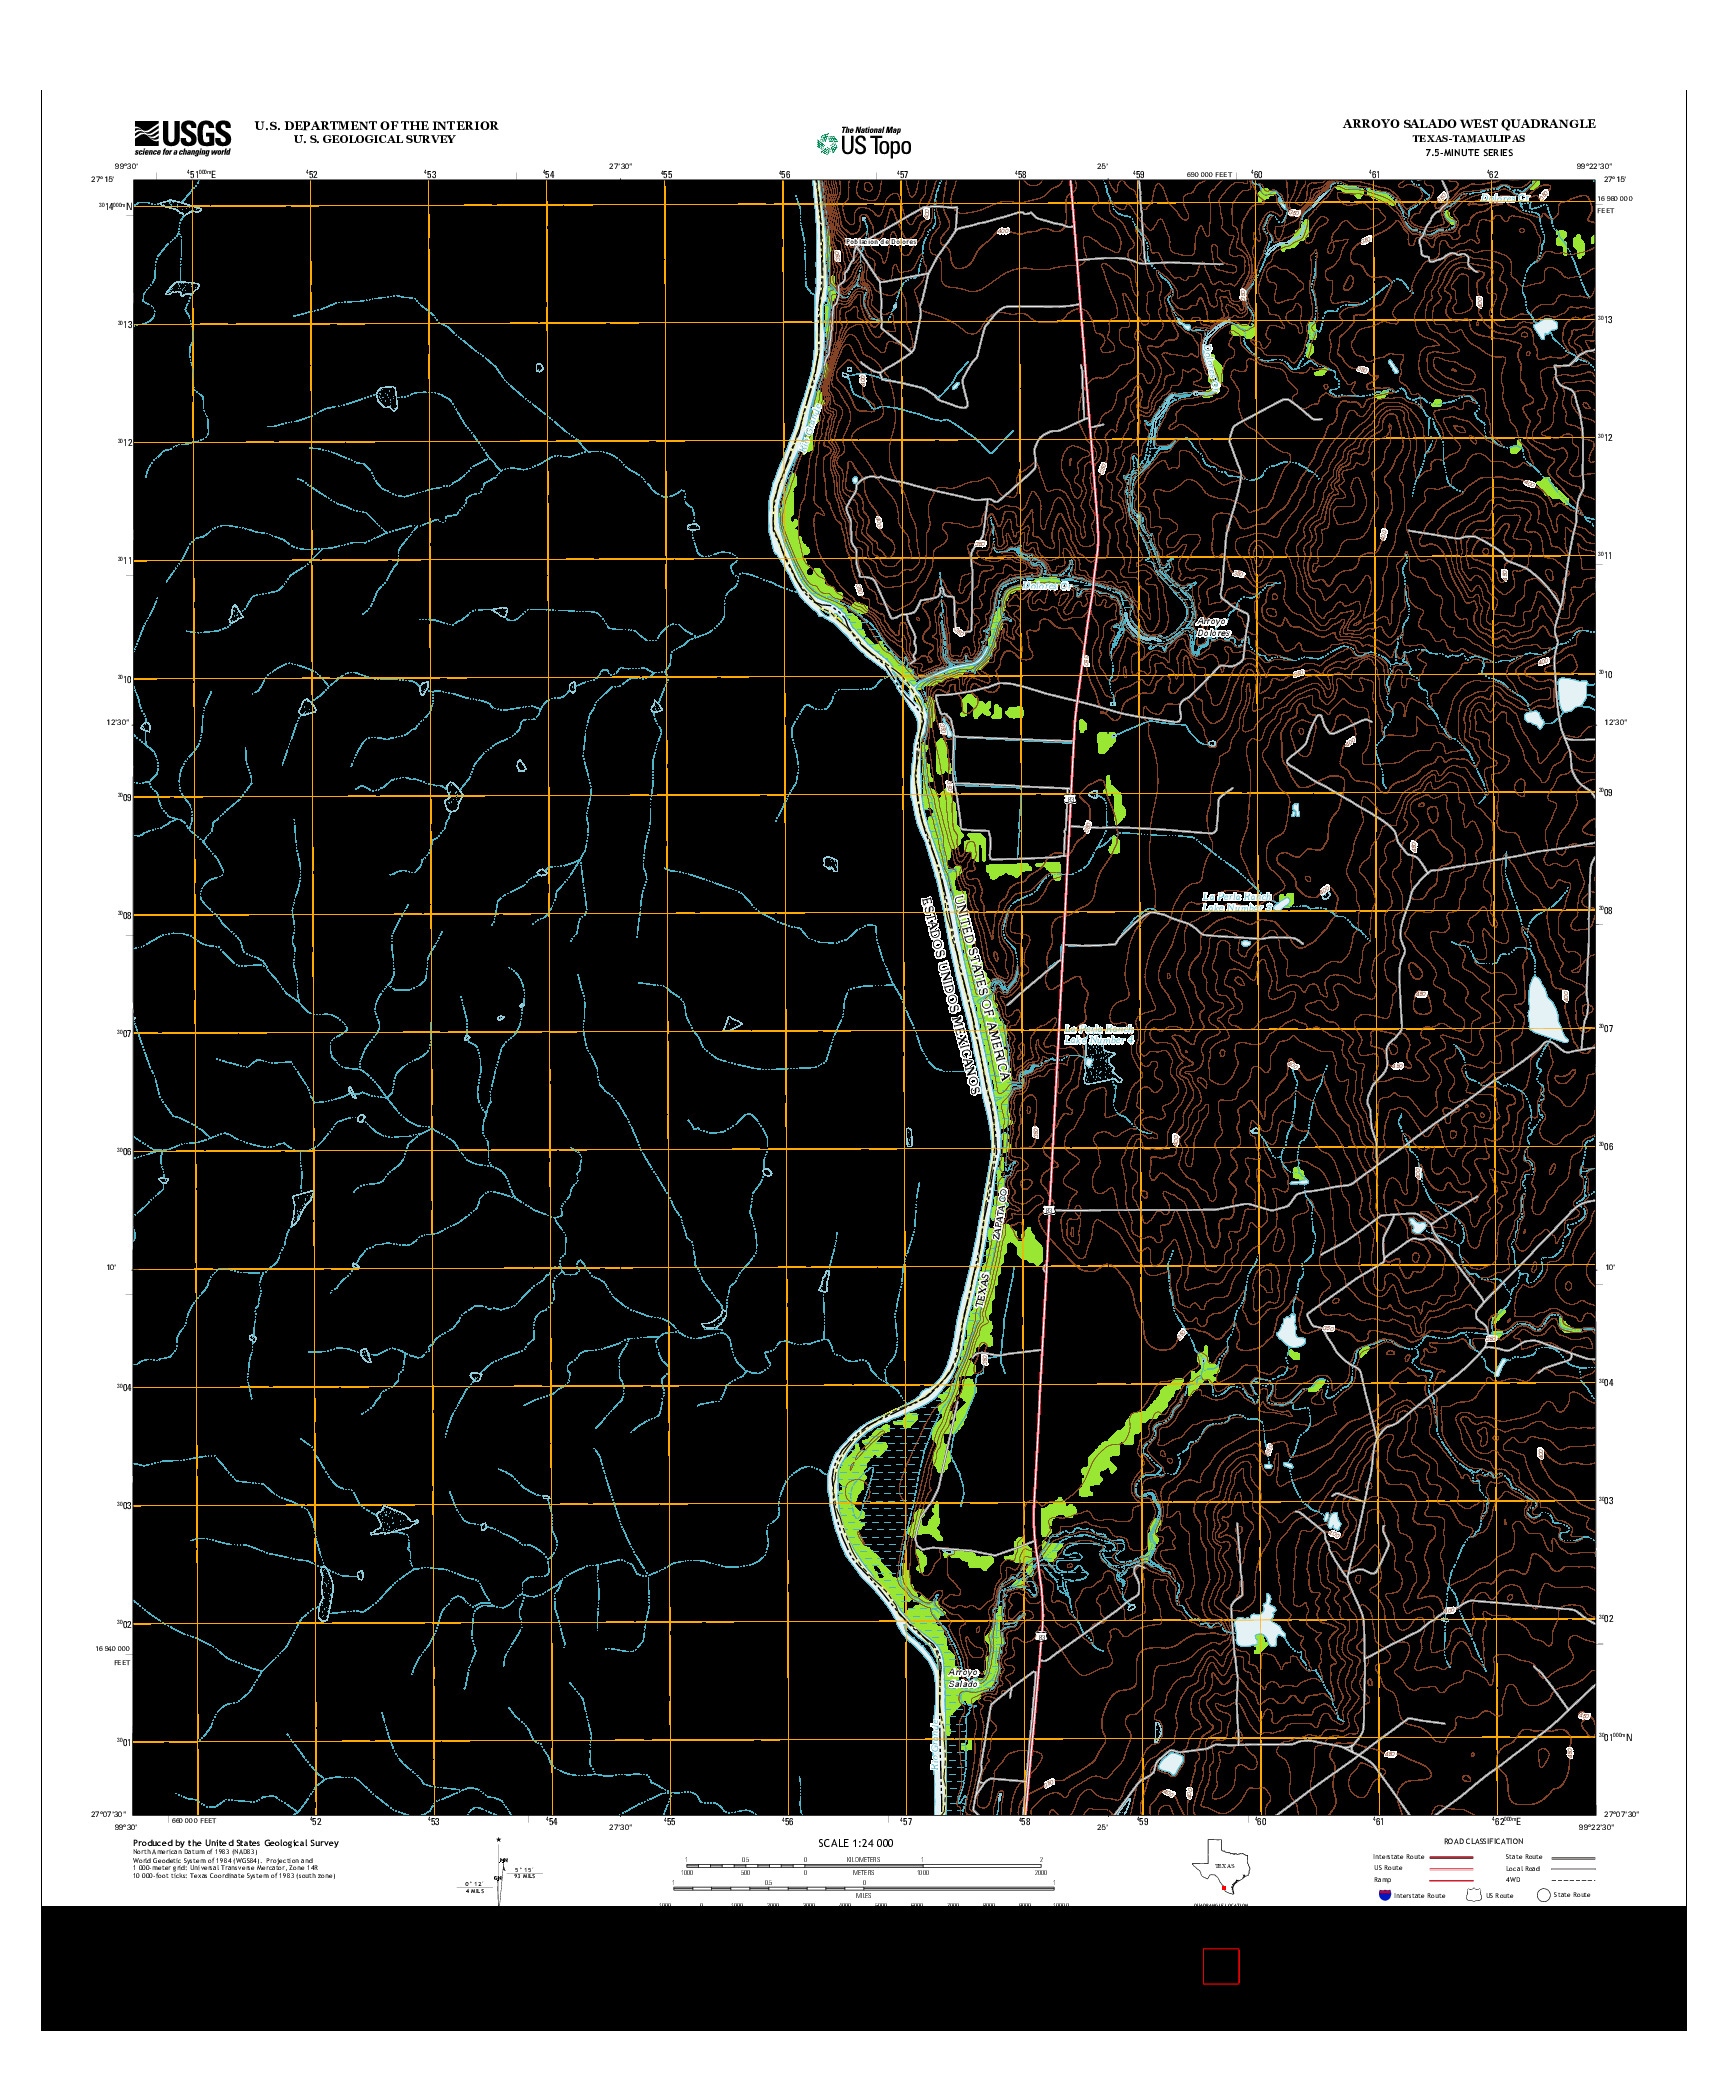 USGS US TOPO 7.5-MINUTE MAP FOR ARROYO SALADO WEST, TX-TAM 2013